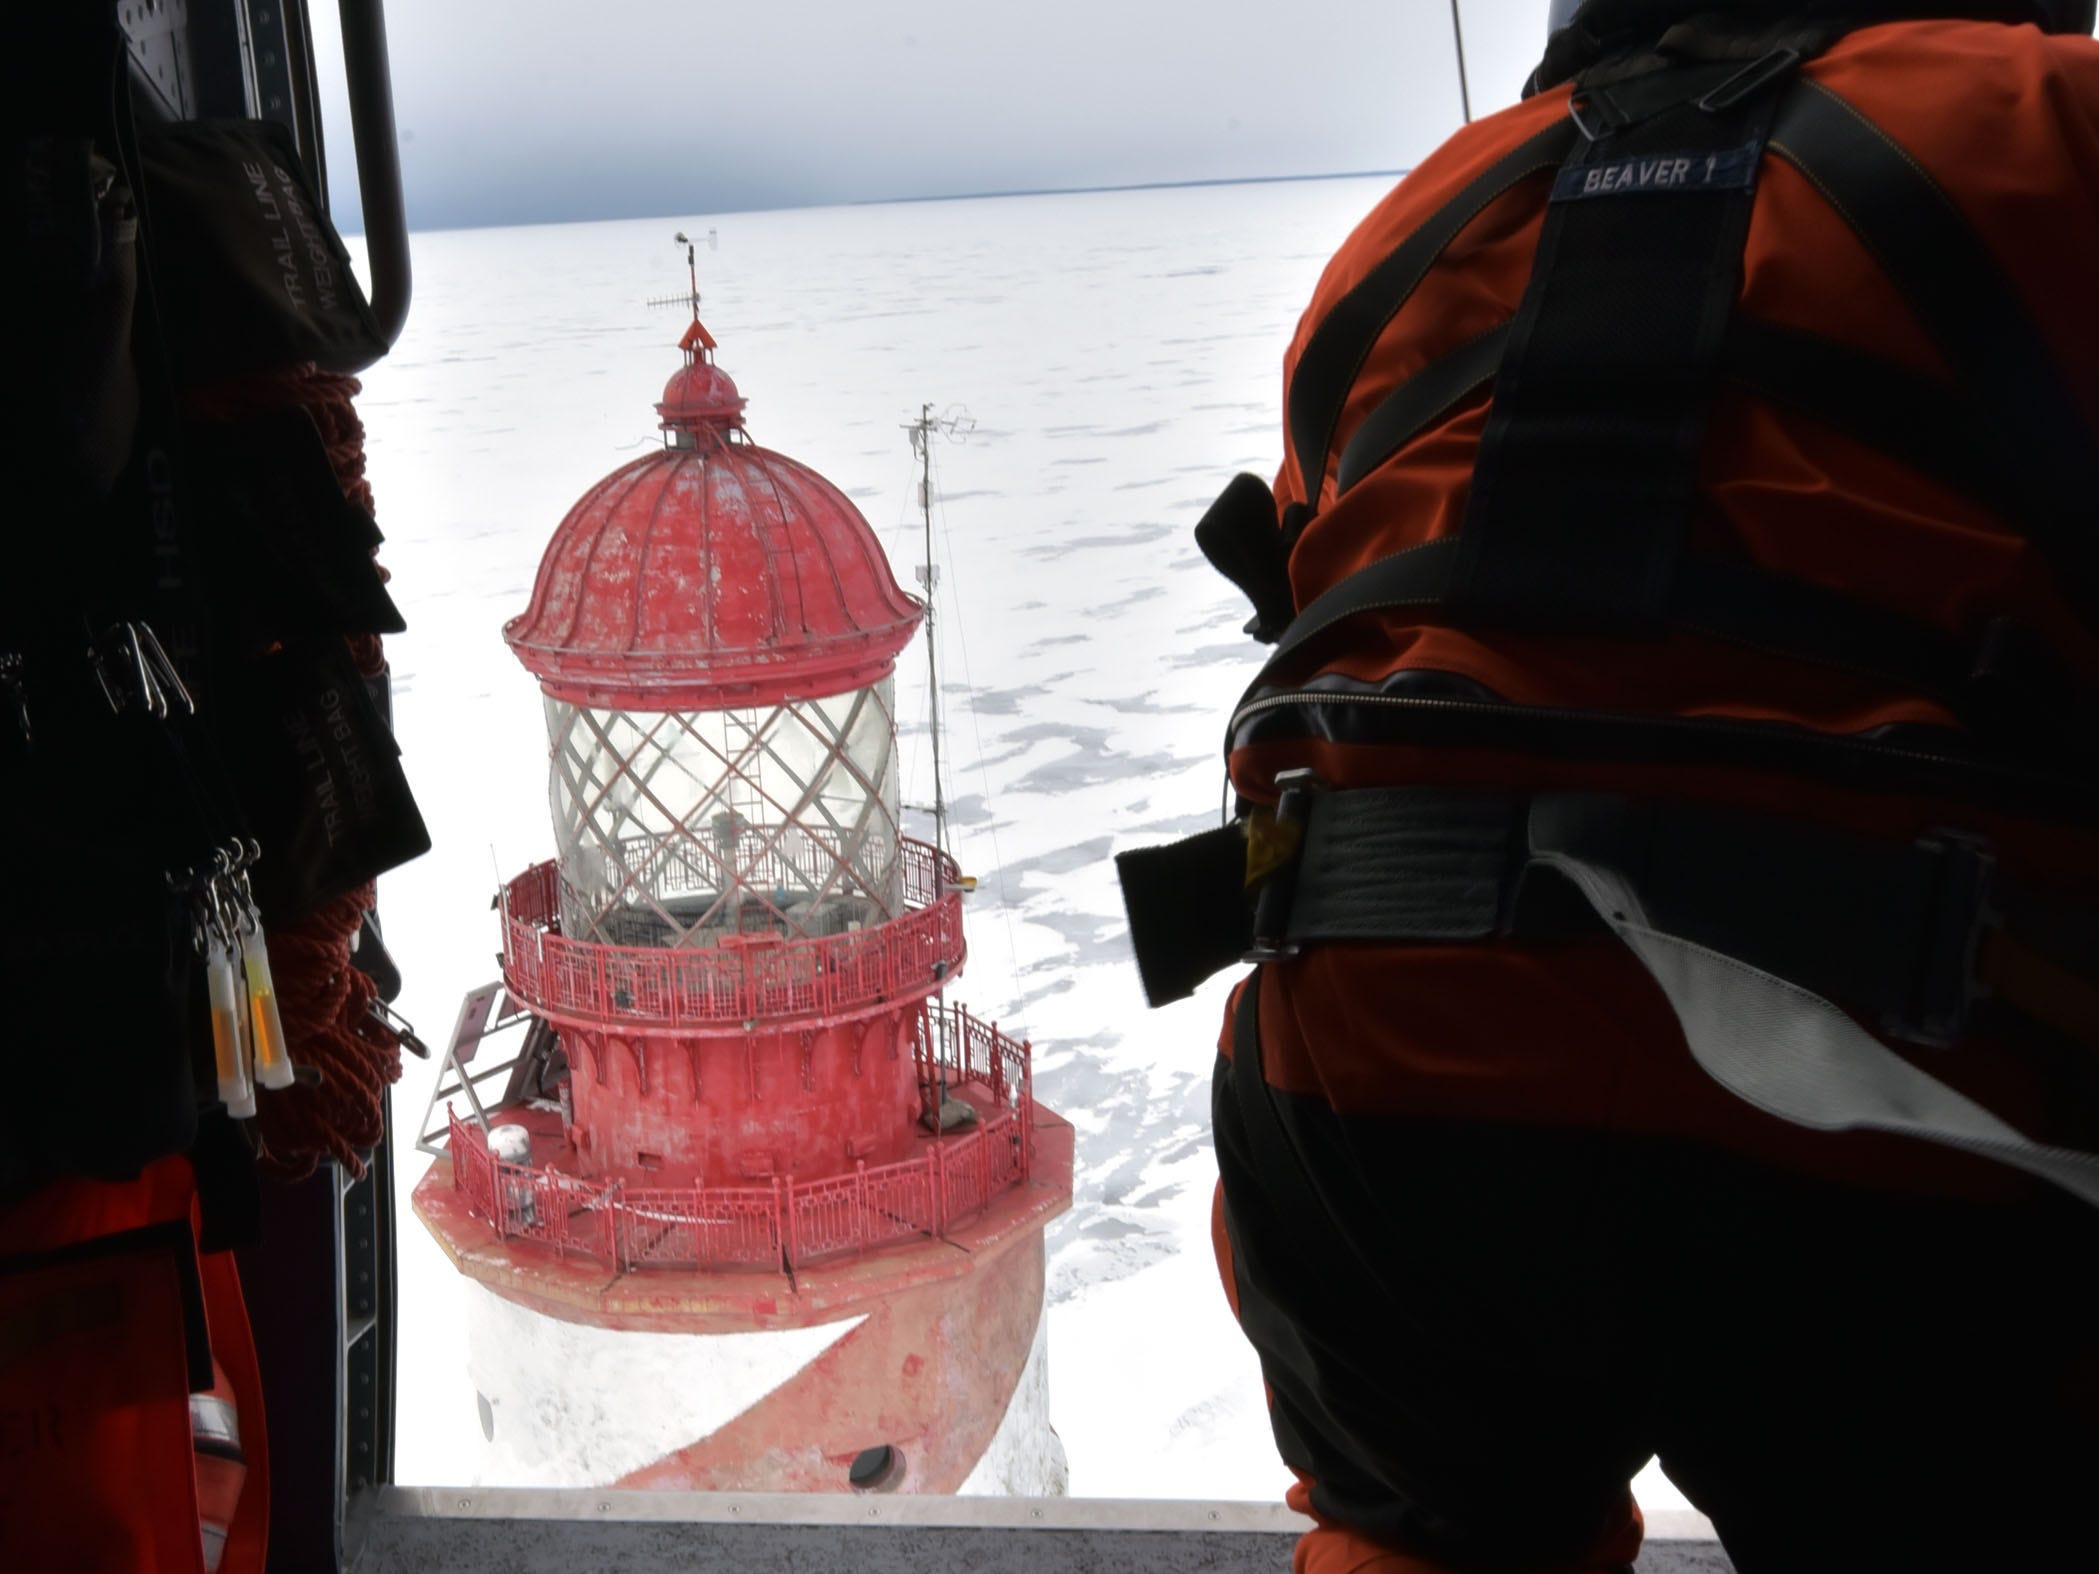 The U.S. Coast Guard's  John Axelson drops a basket 130 feet to the deck of the White Shoal Lighthouse in upper Lake Michigan.